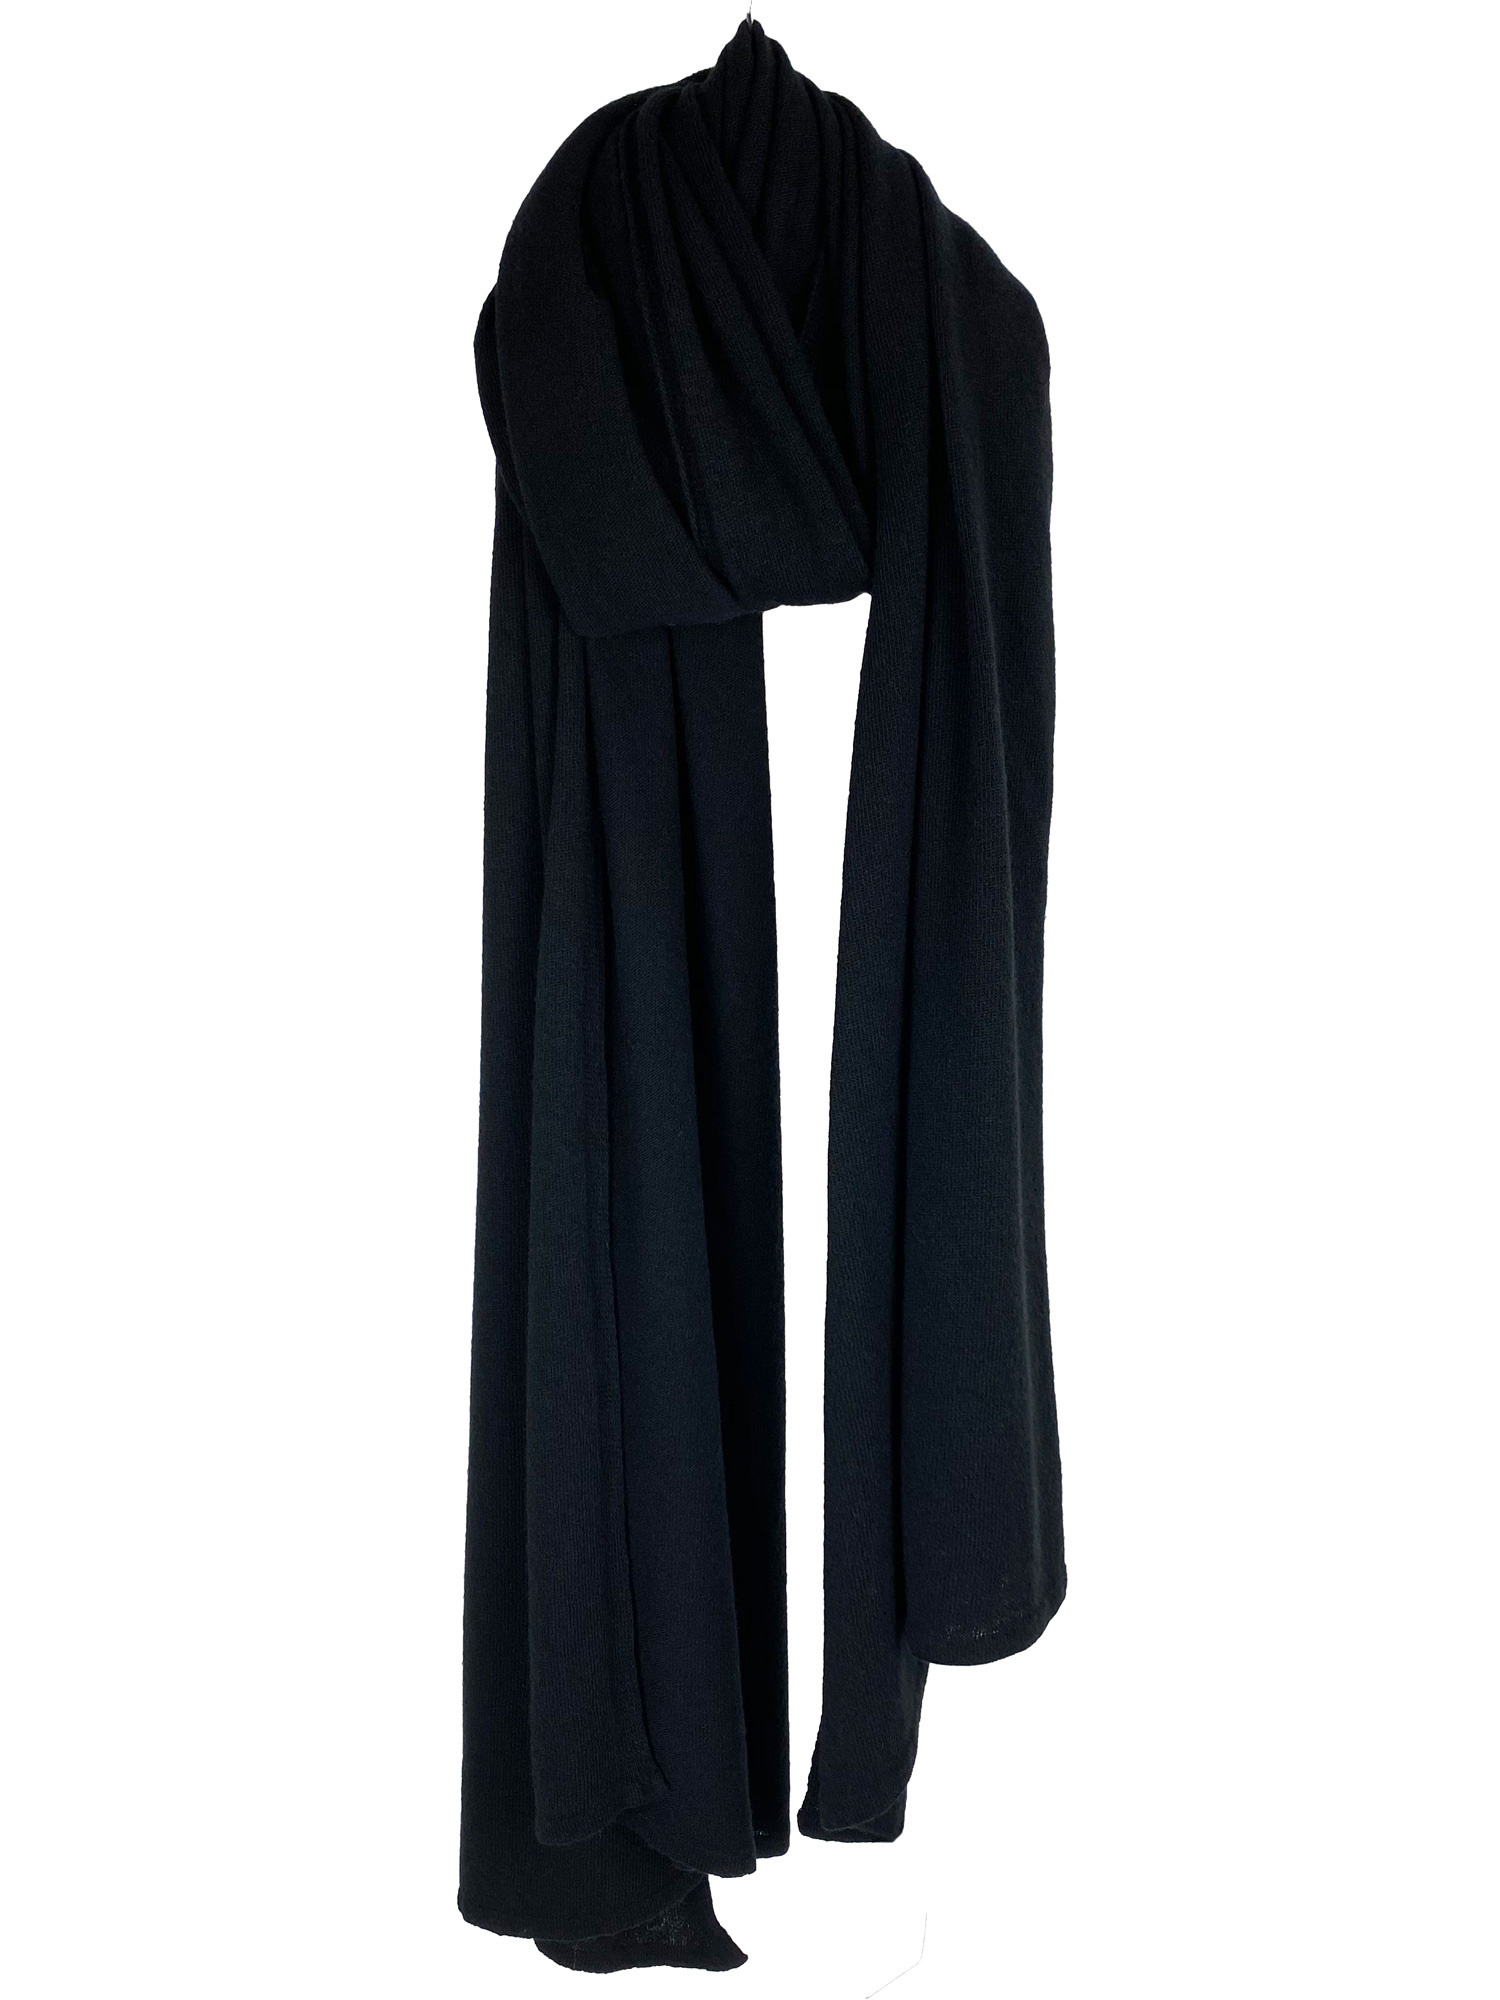 Cosy Travel Light Wrap Solid Black